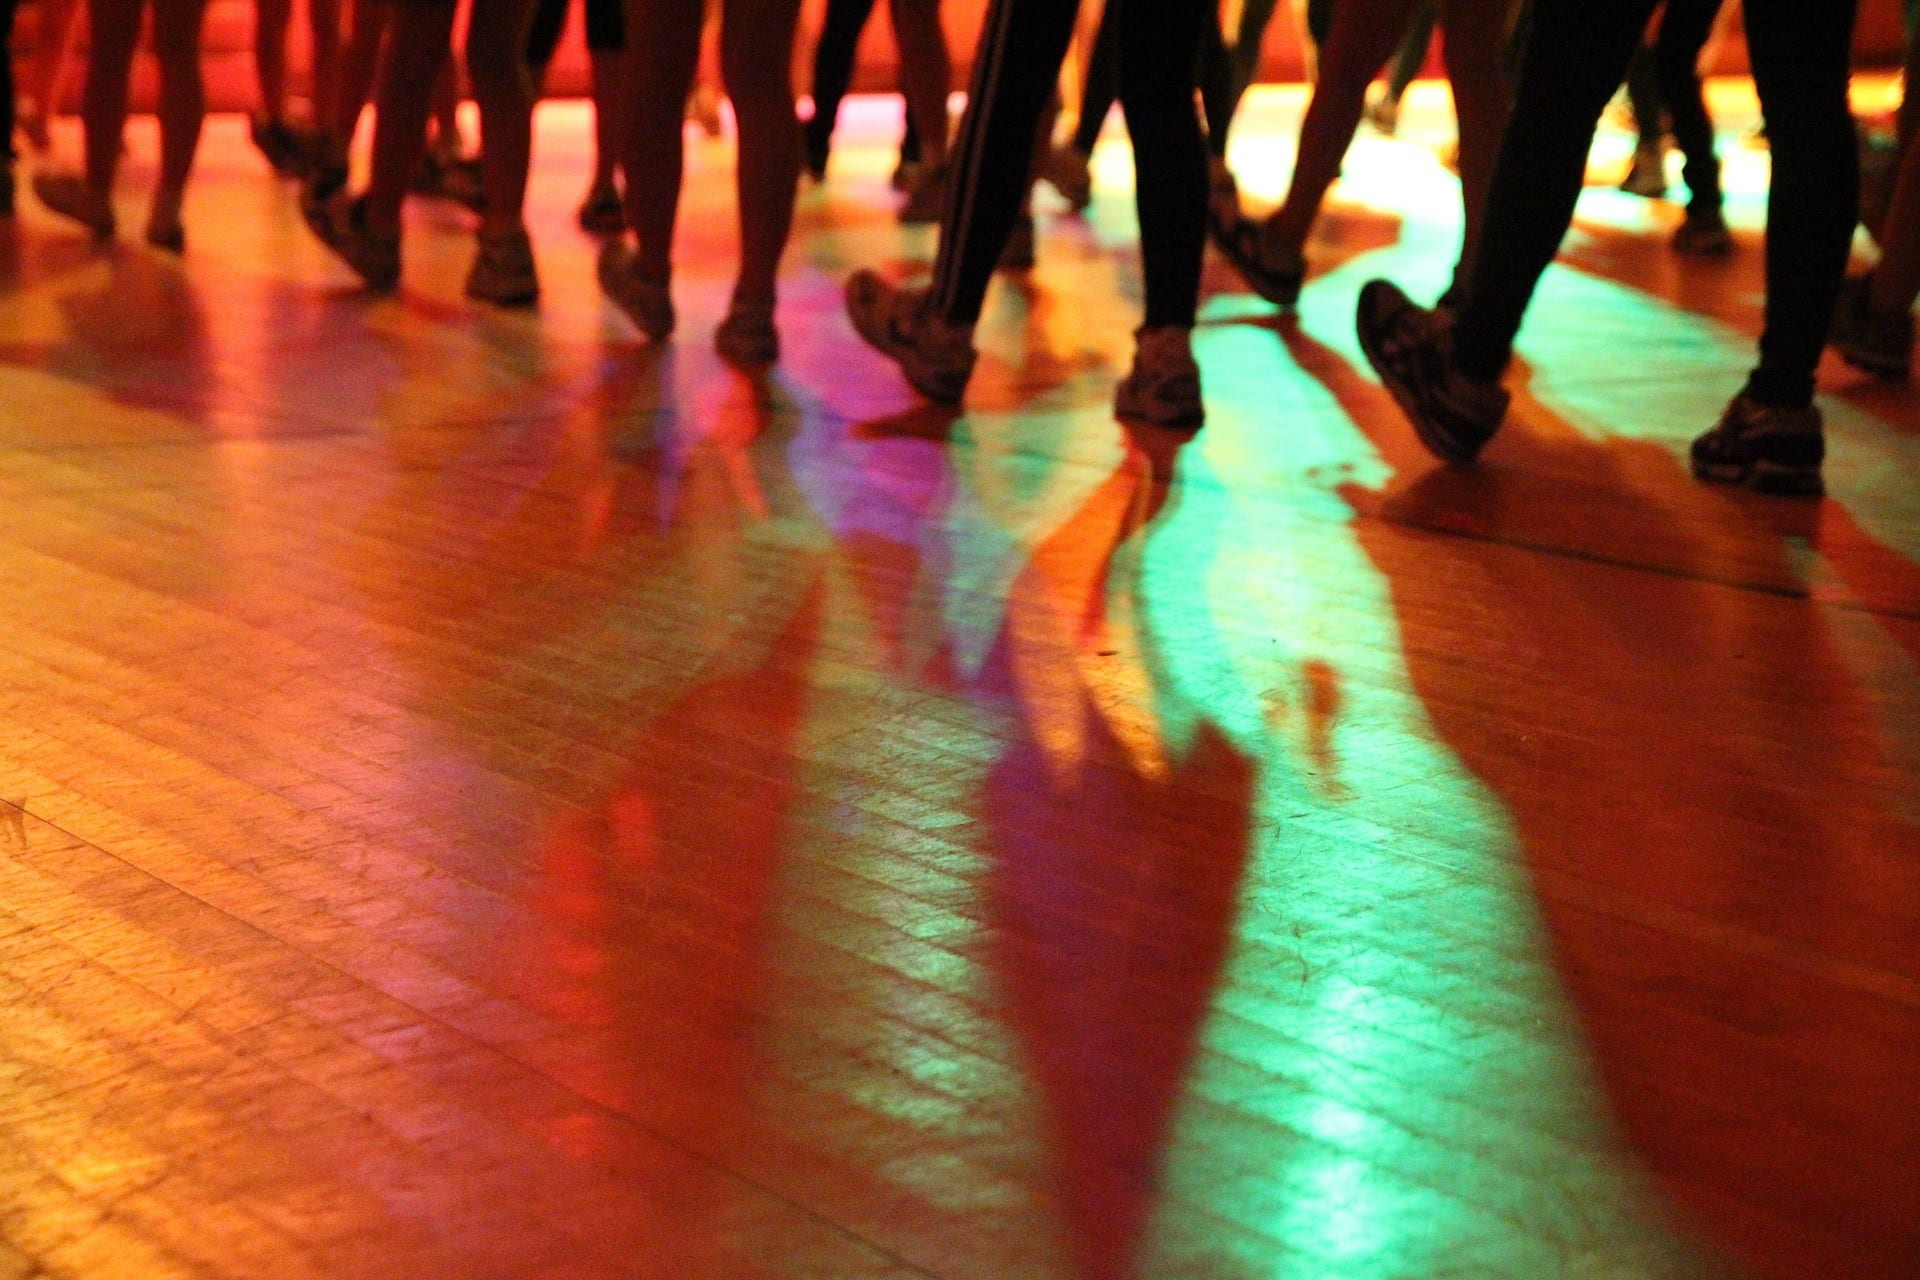 The class promises to teach the newest line dances while providing some  aerobic exercise.